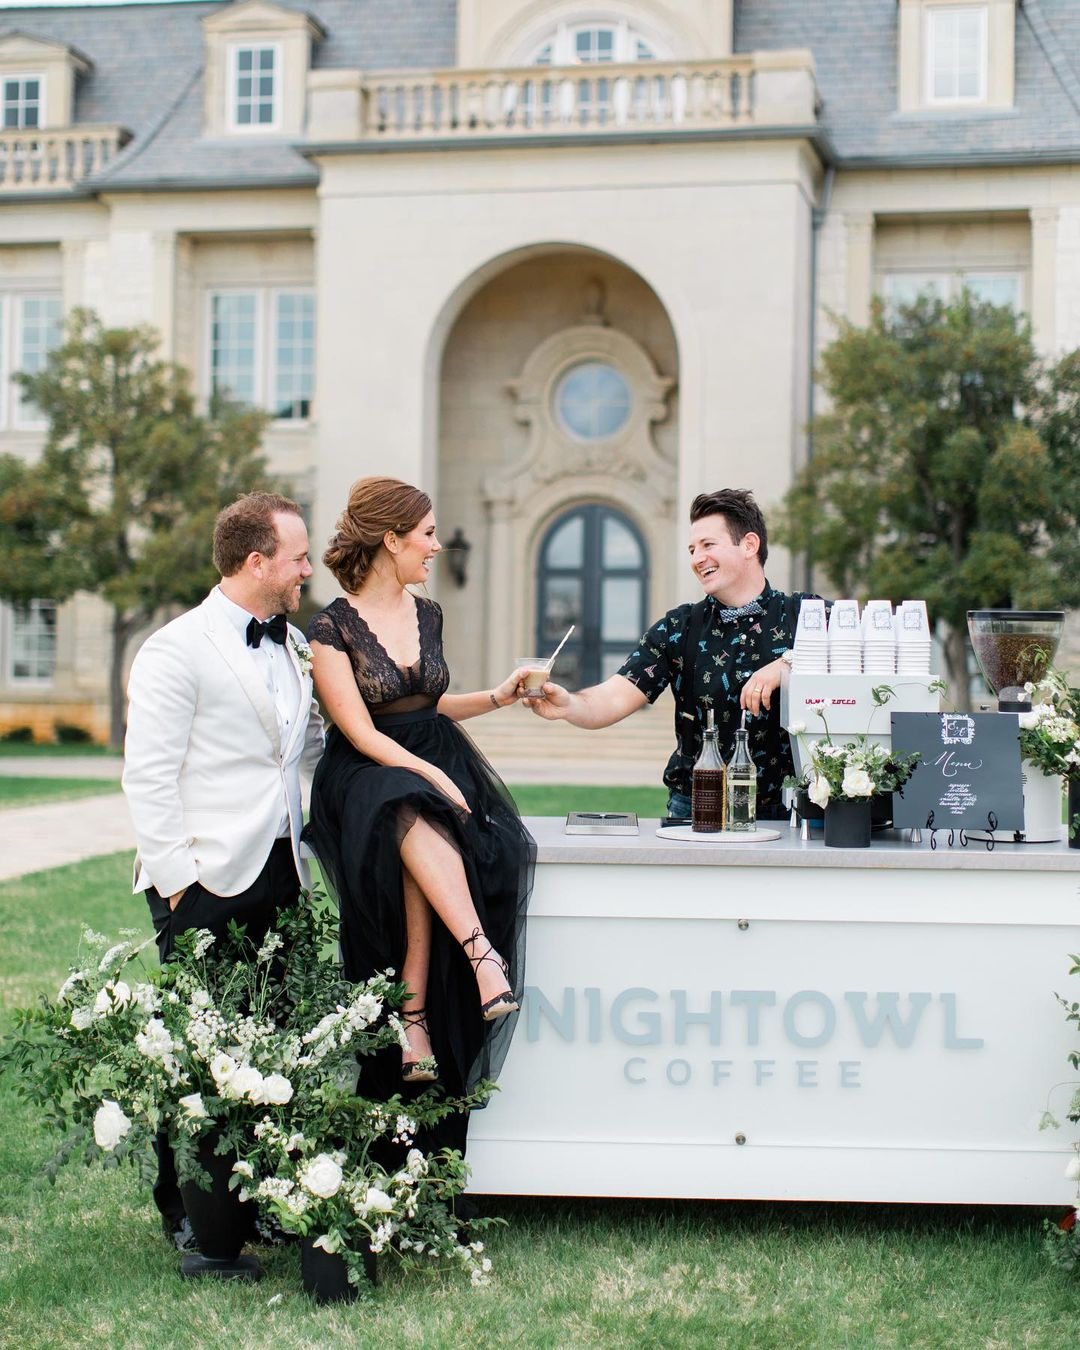 Why Coffee Carts are the Coolest New Wedding Trend